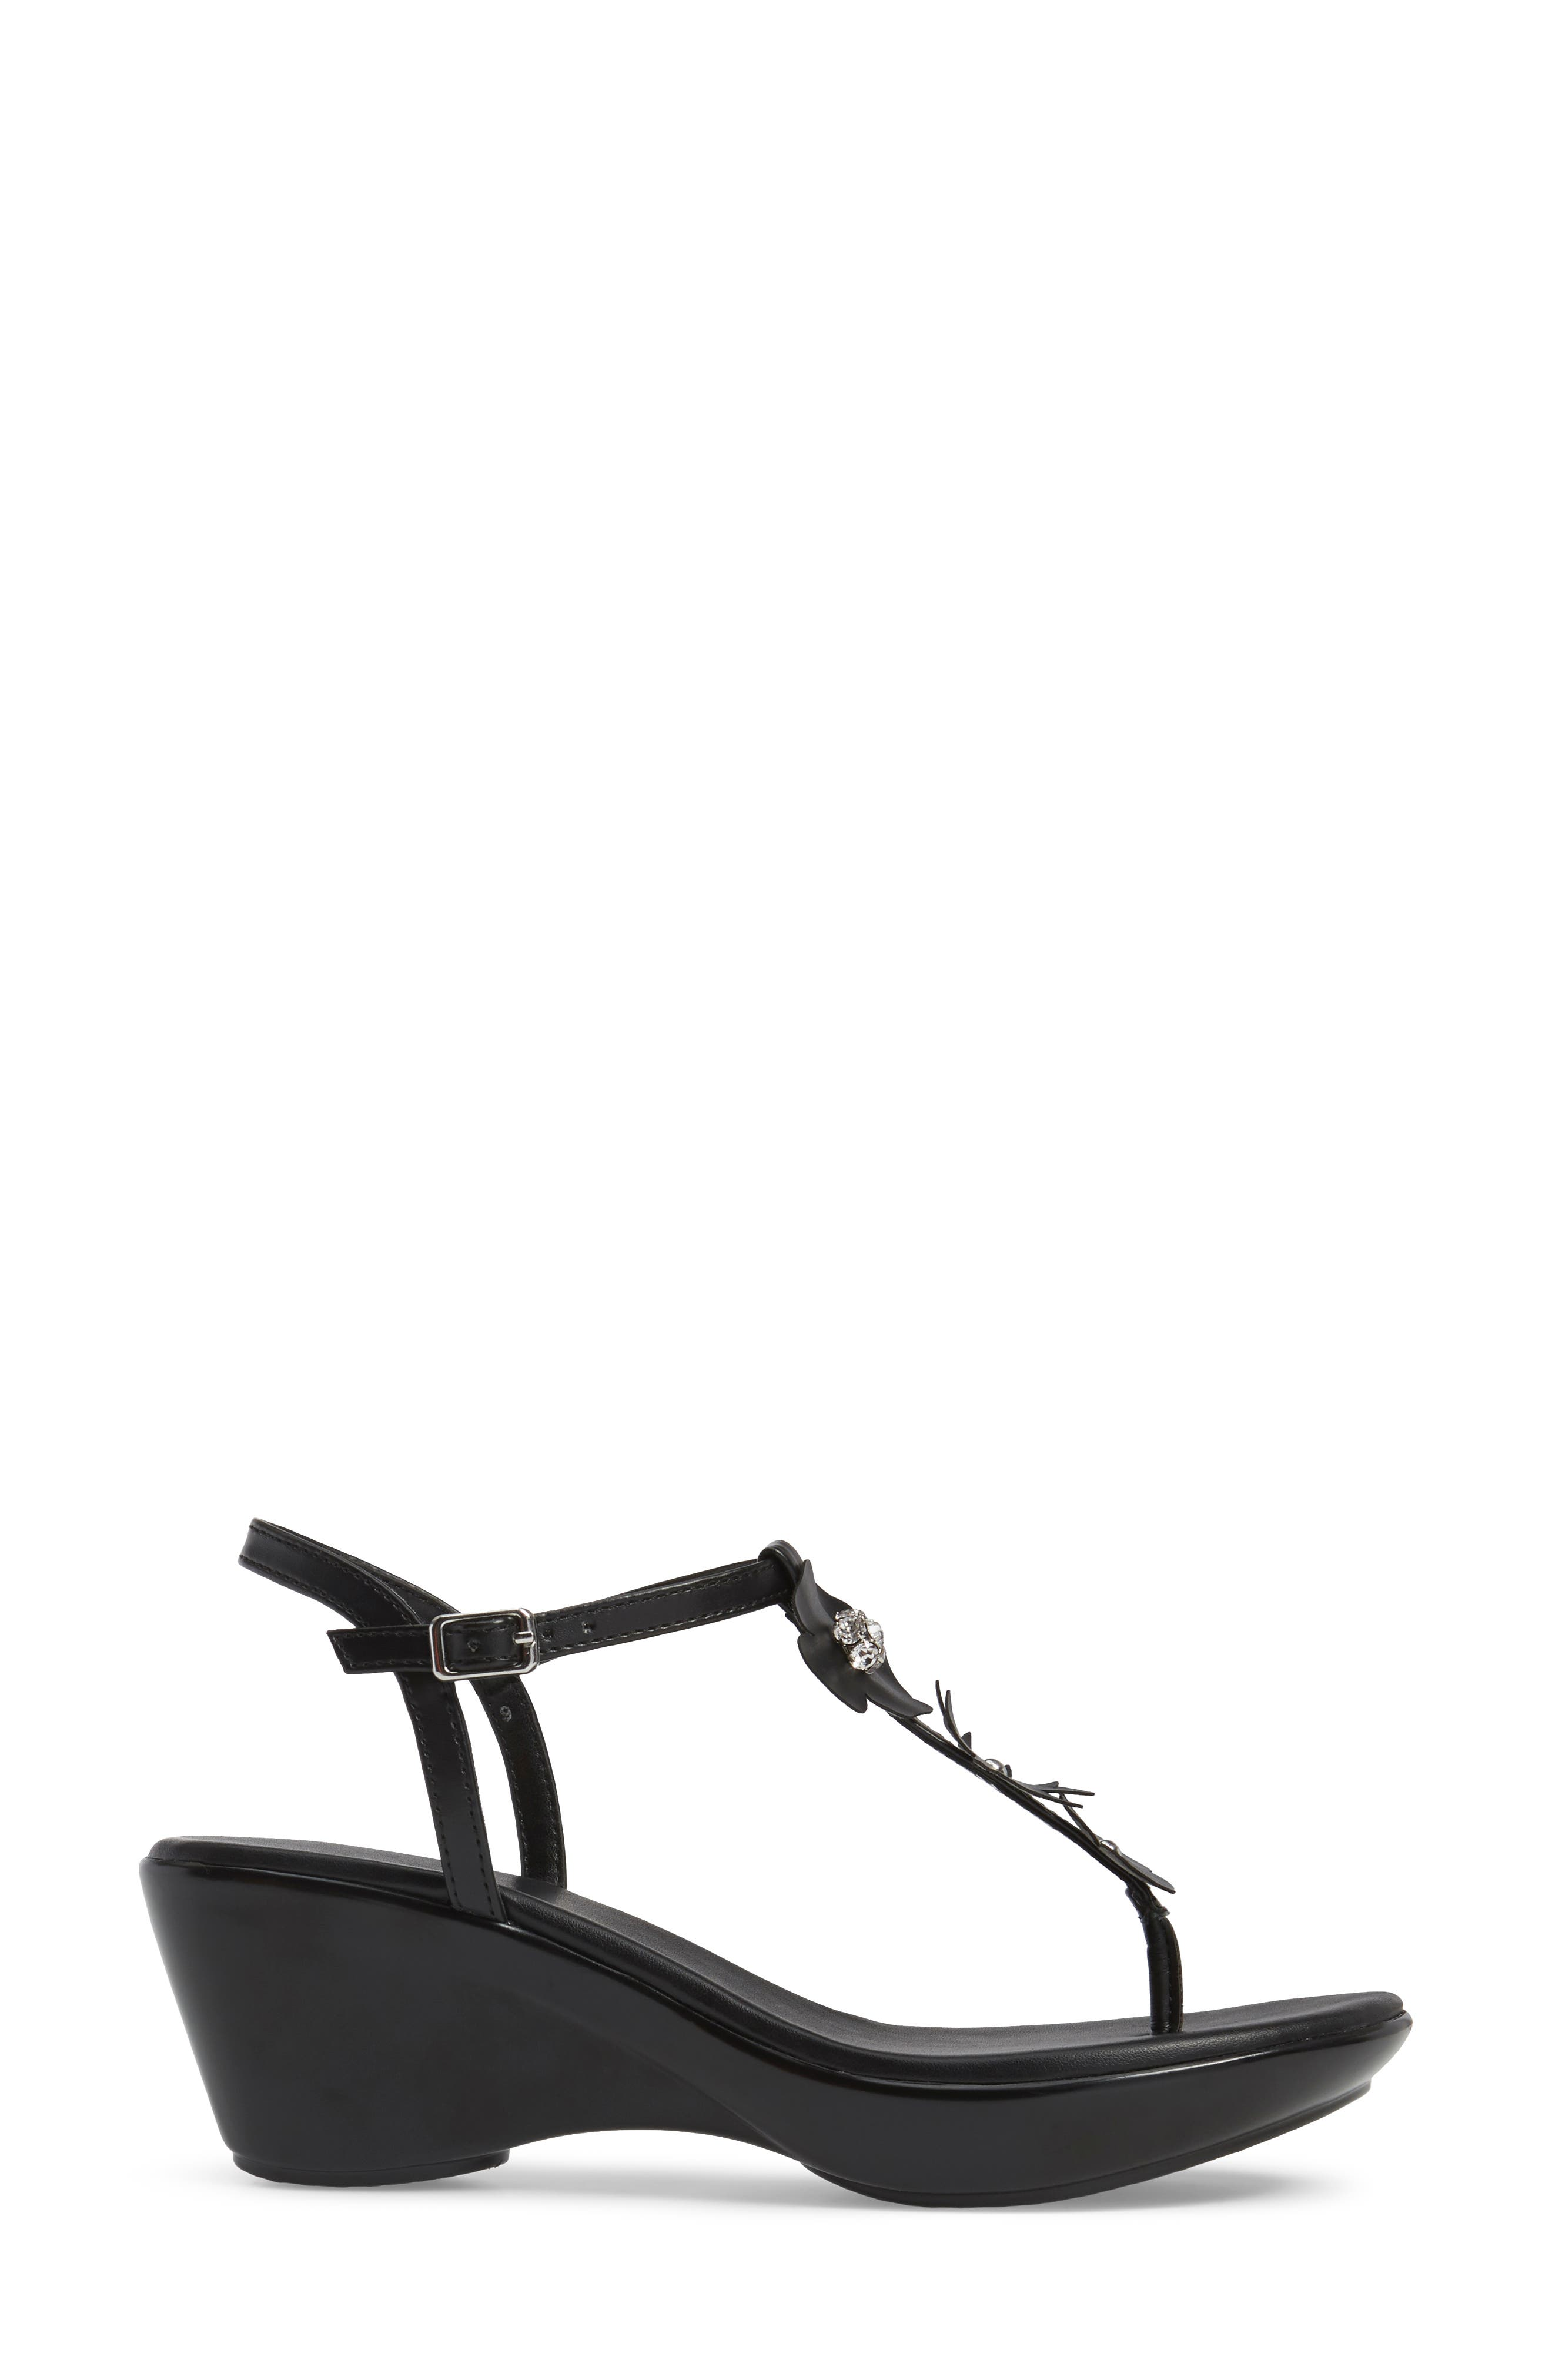 Gianna Embellished T-Strap Wedge,                             Alternate thumbnail 3, color,                             Black Faux Leather